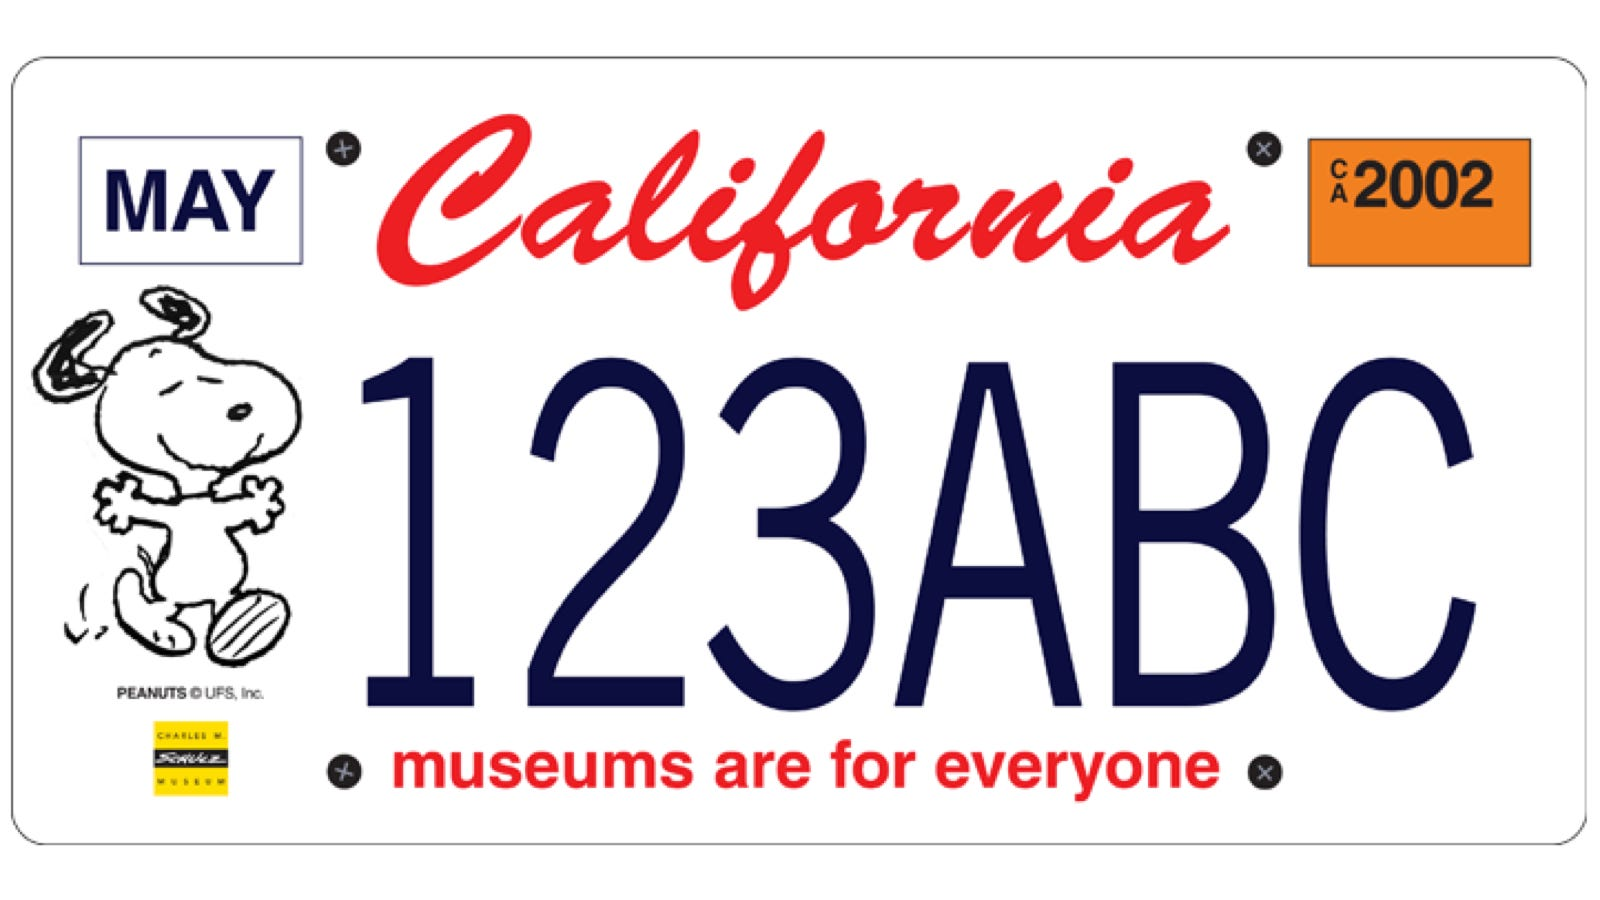 Ca Dmv Pay Registration >> California Drivers Can Get A Snoopy License Plate To Save Museums